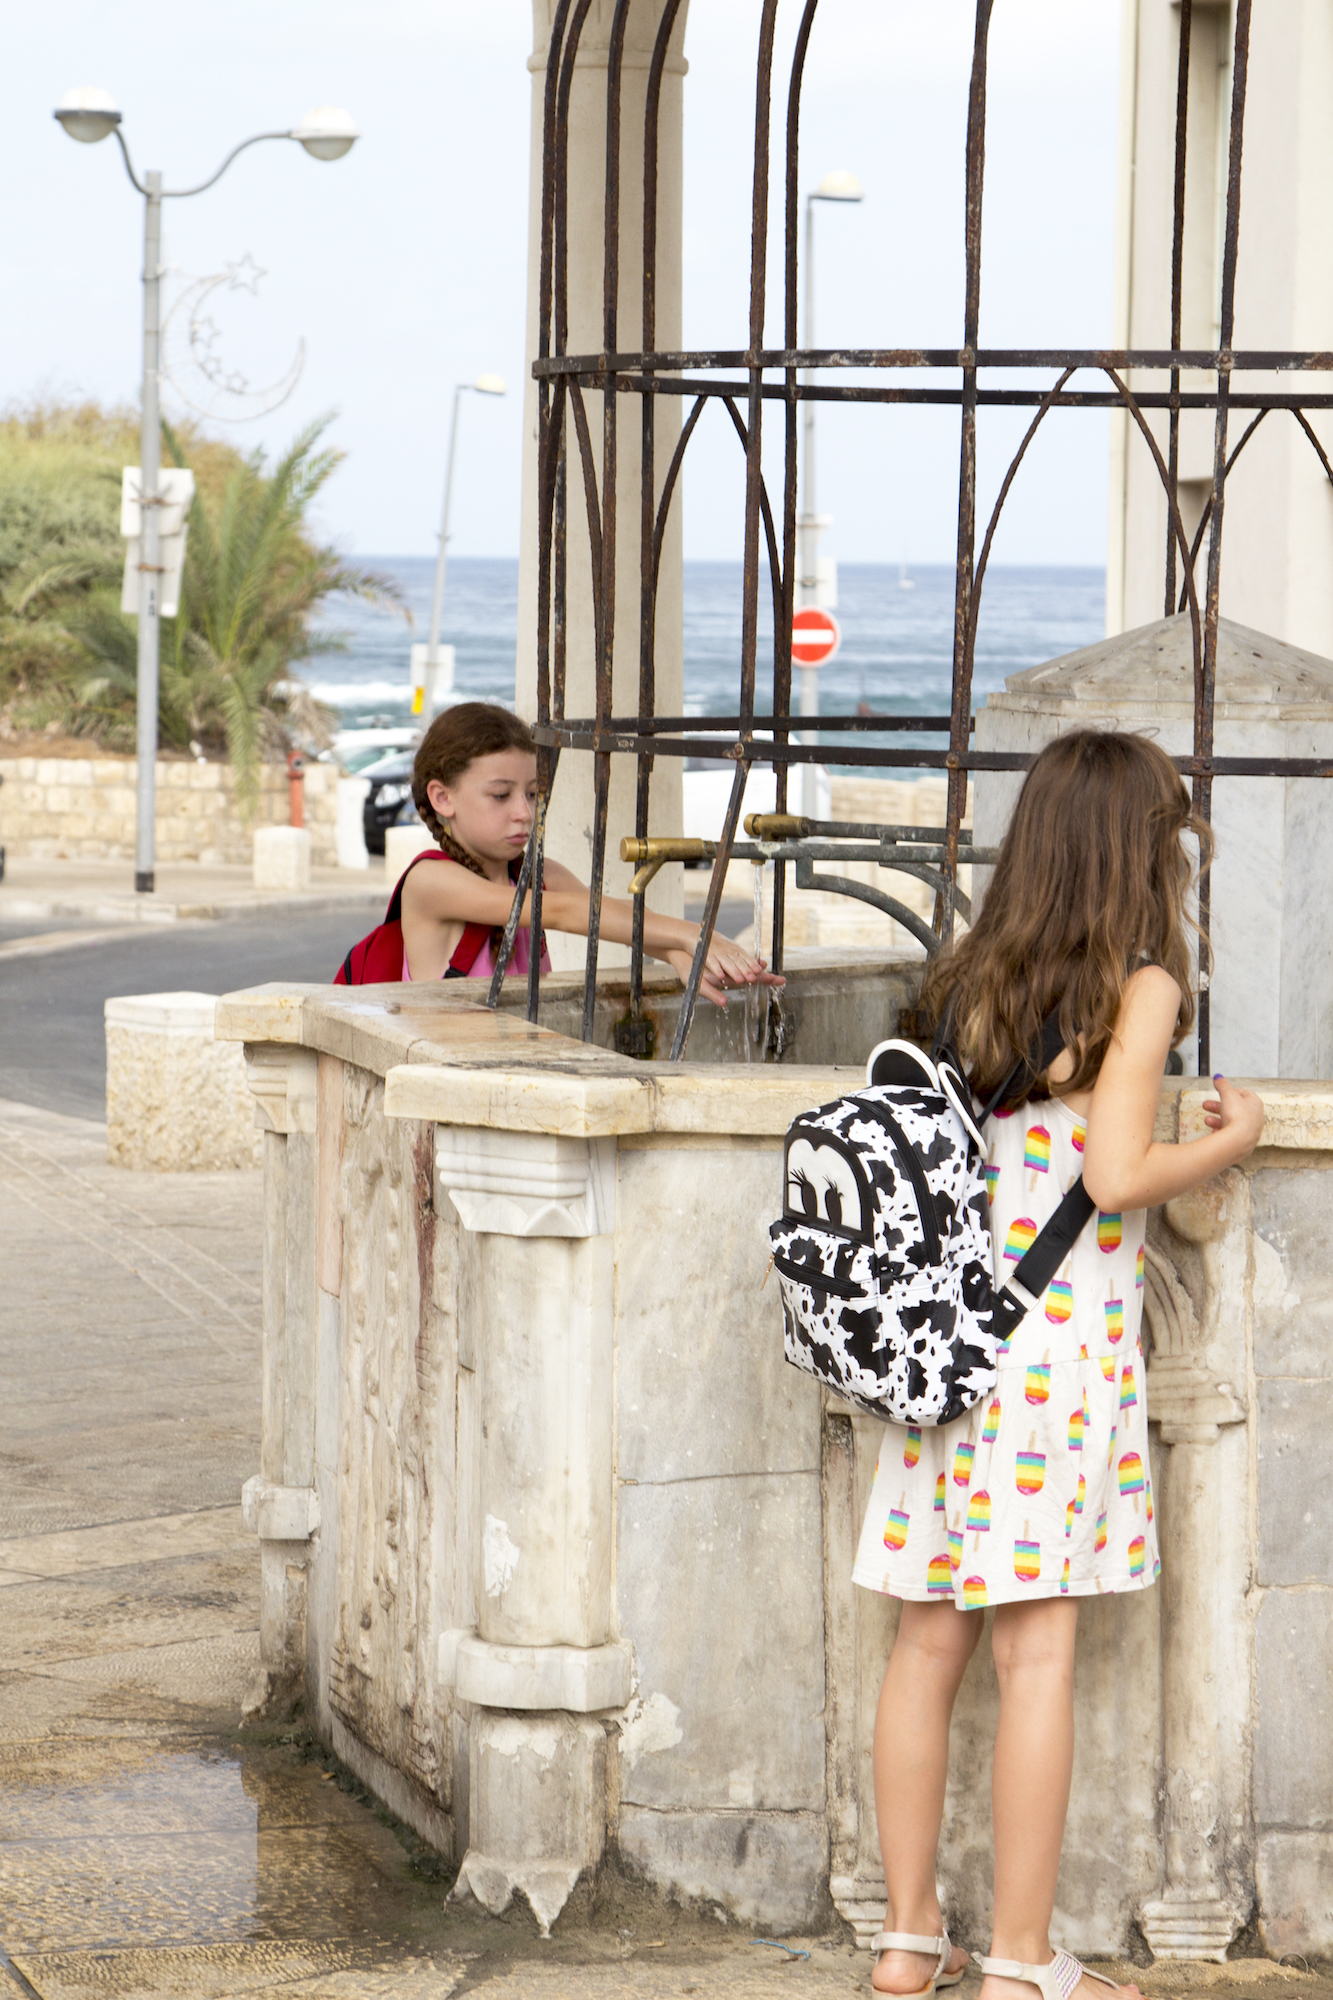 Children at a well in Tel Aviv-Yafo, Israel #travel photography by Geena Matuson @geenamatuson #thegirlmirage at thegirlmirage.com.